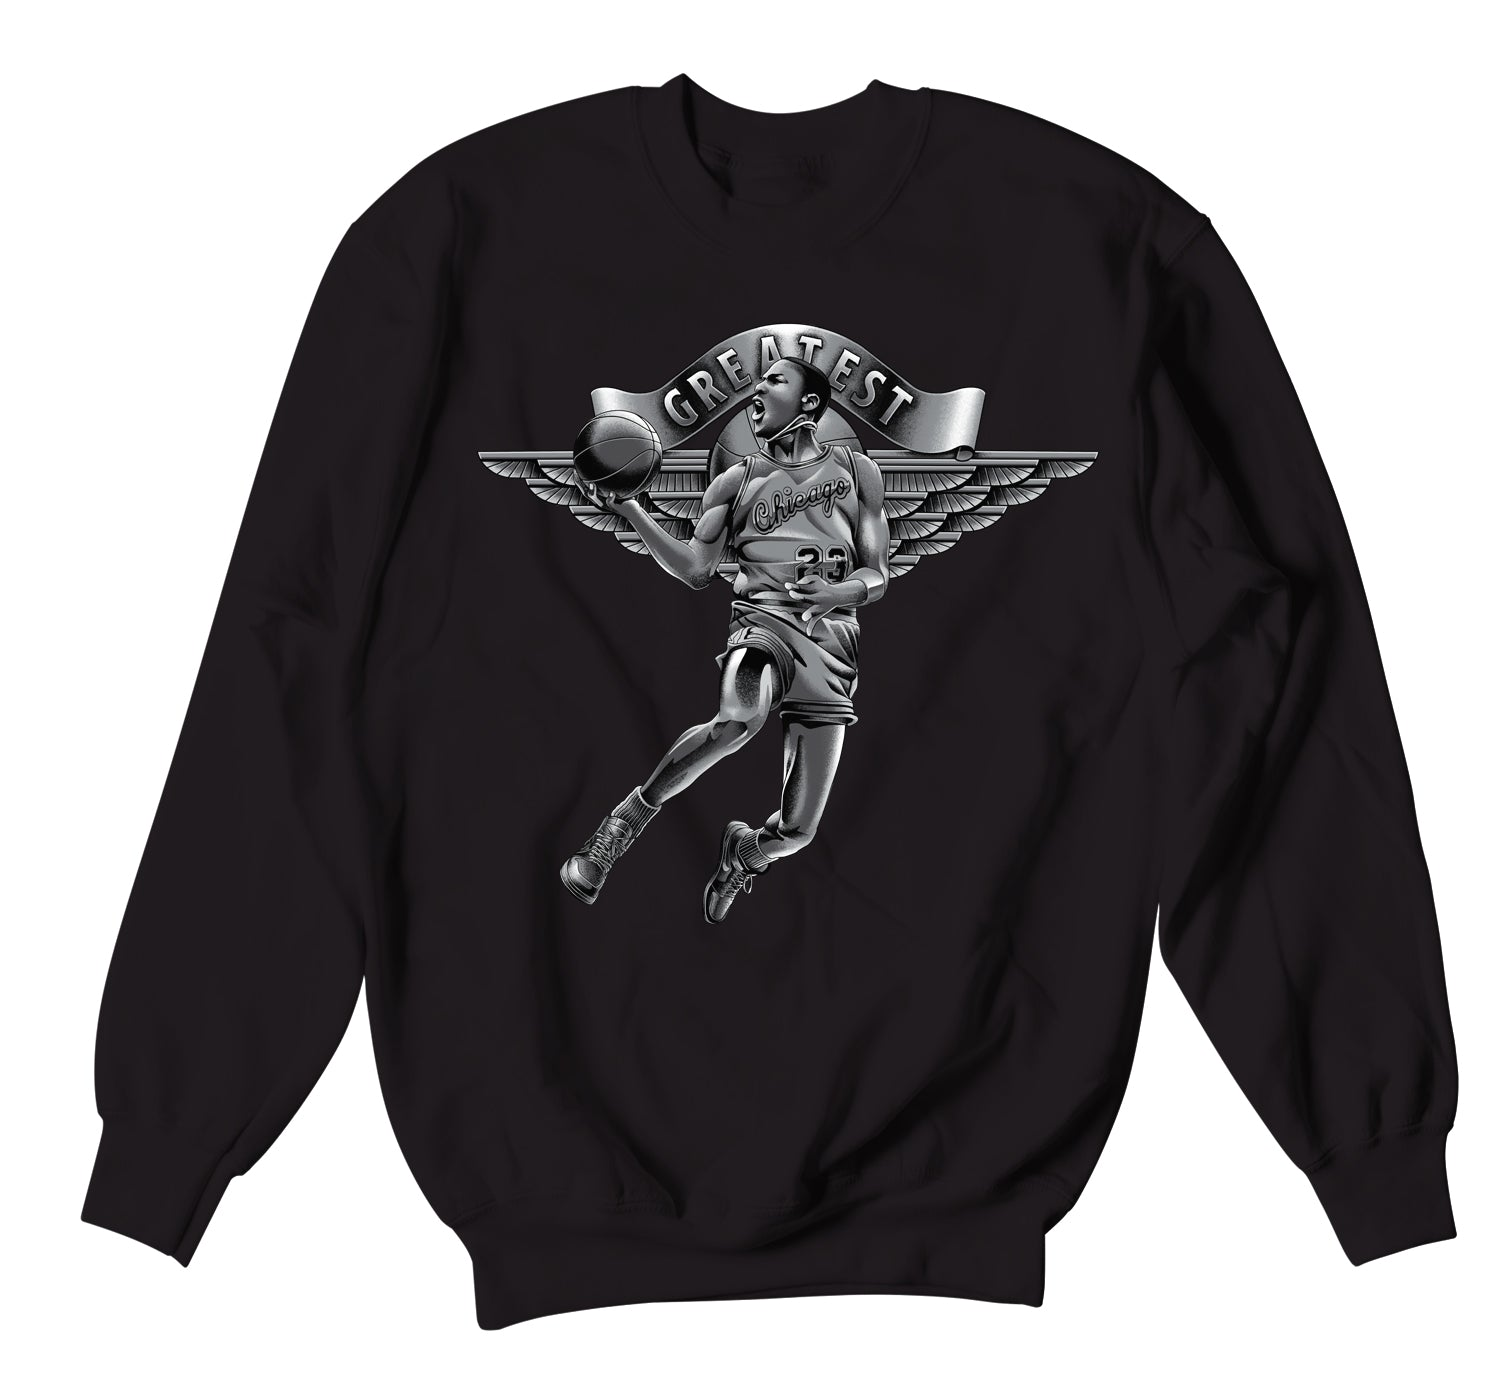 mens crew neck sweater collection designed to match Jordan 1 silver toe sneaker collection